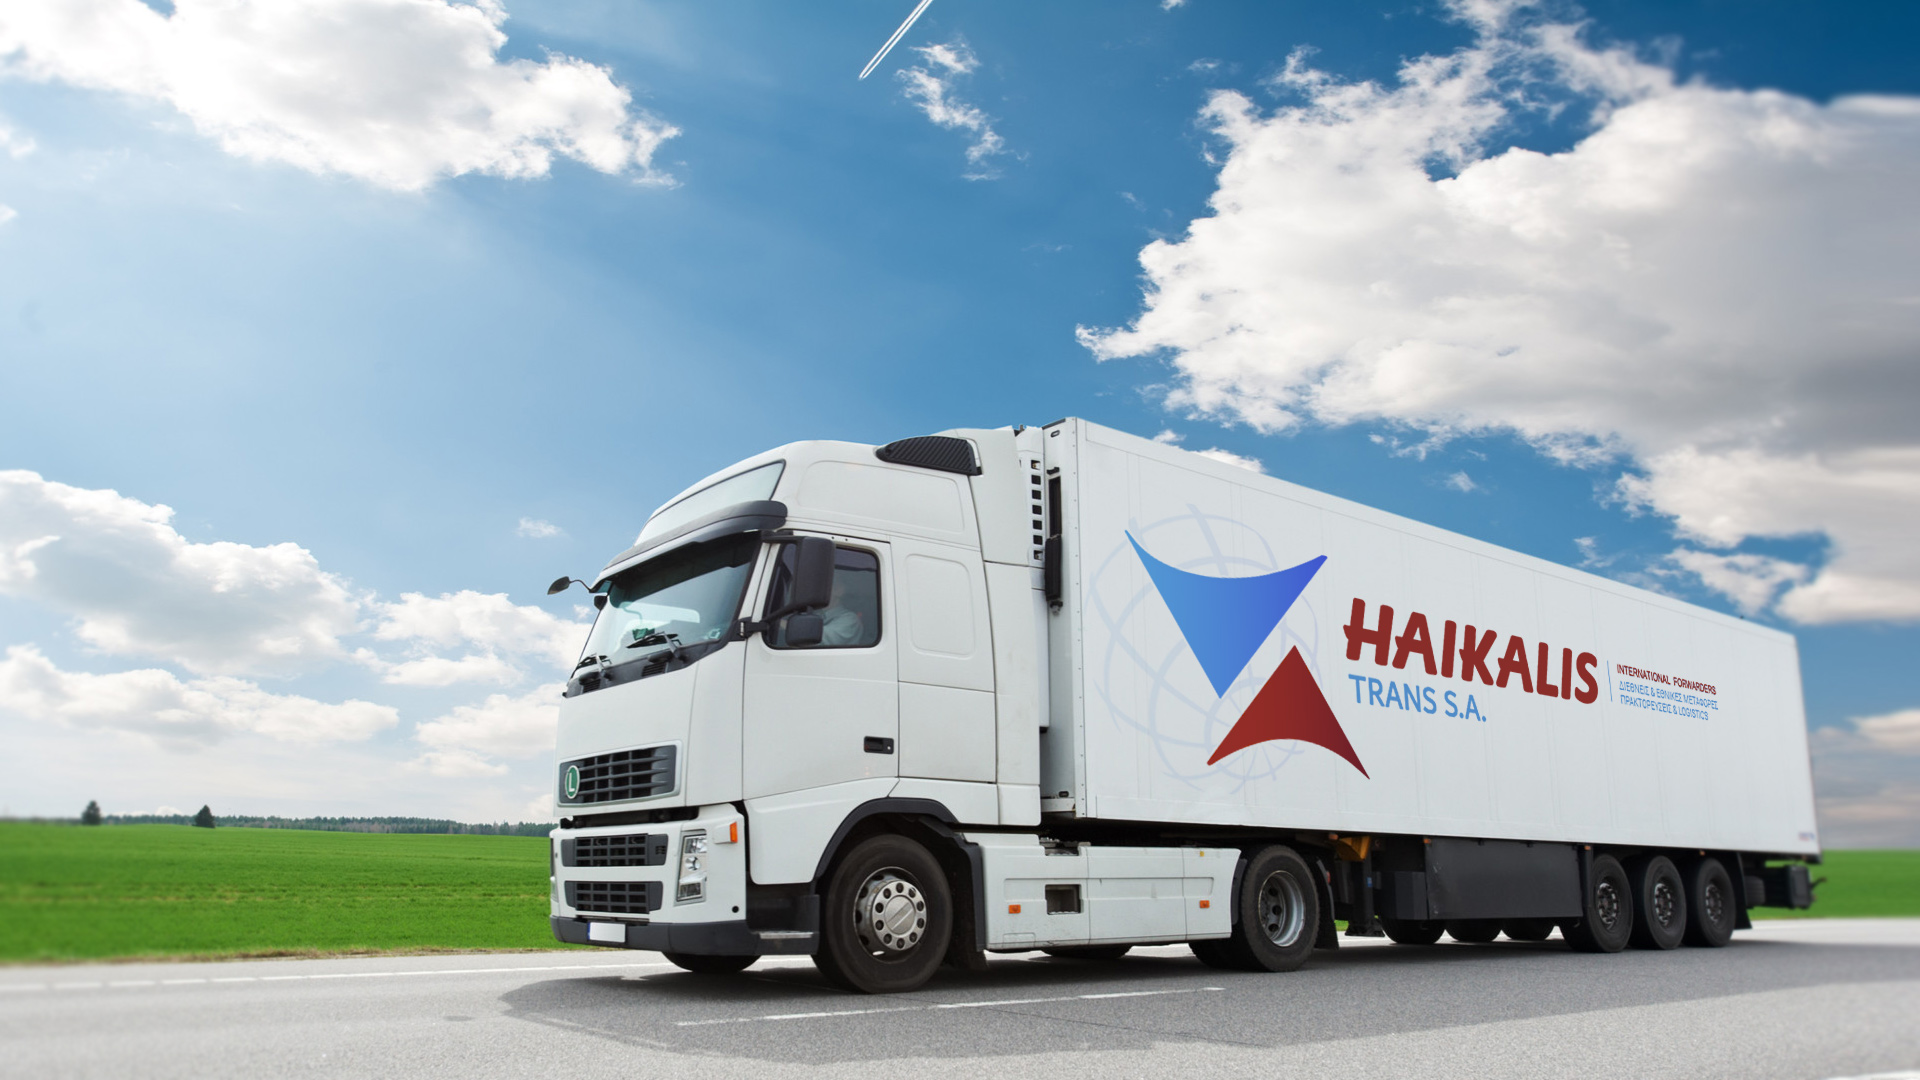 haikalis road transport